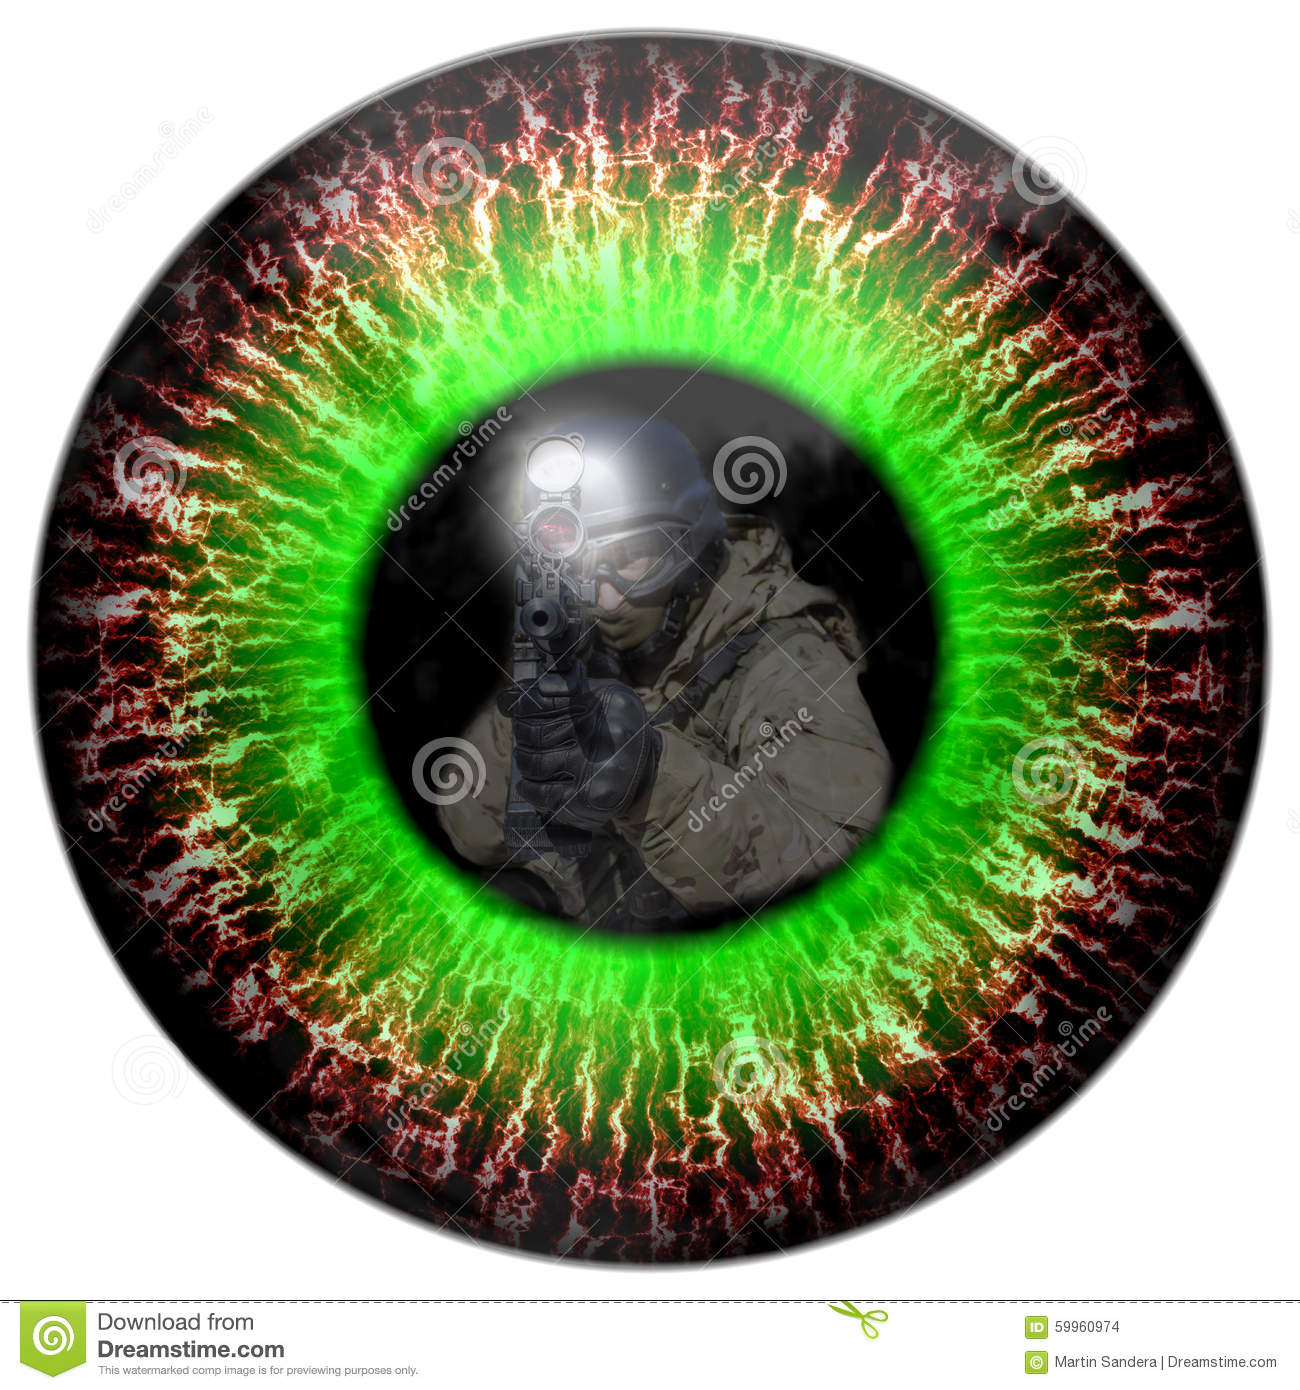 Zombie Eyes With The Reflection Headed Soldier Eyes Killer Deadly Eye Contact Stock